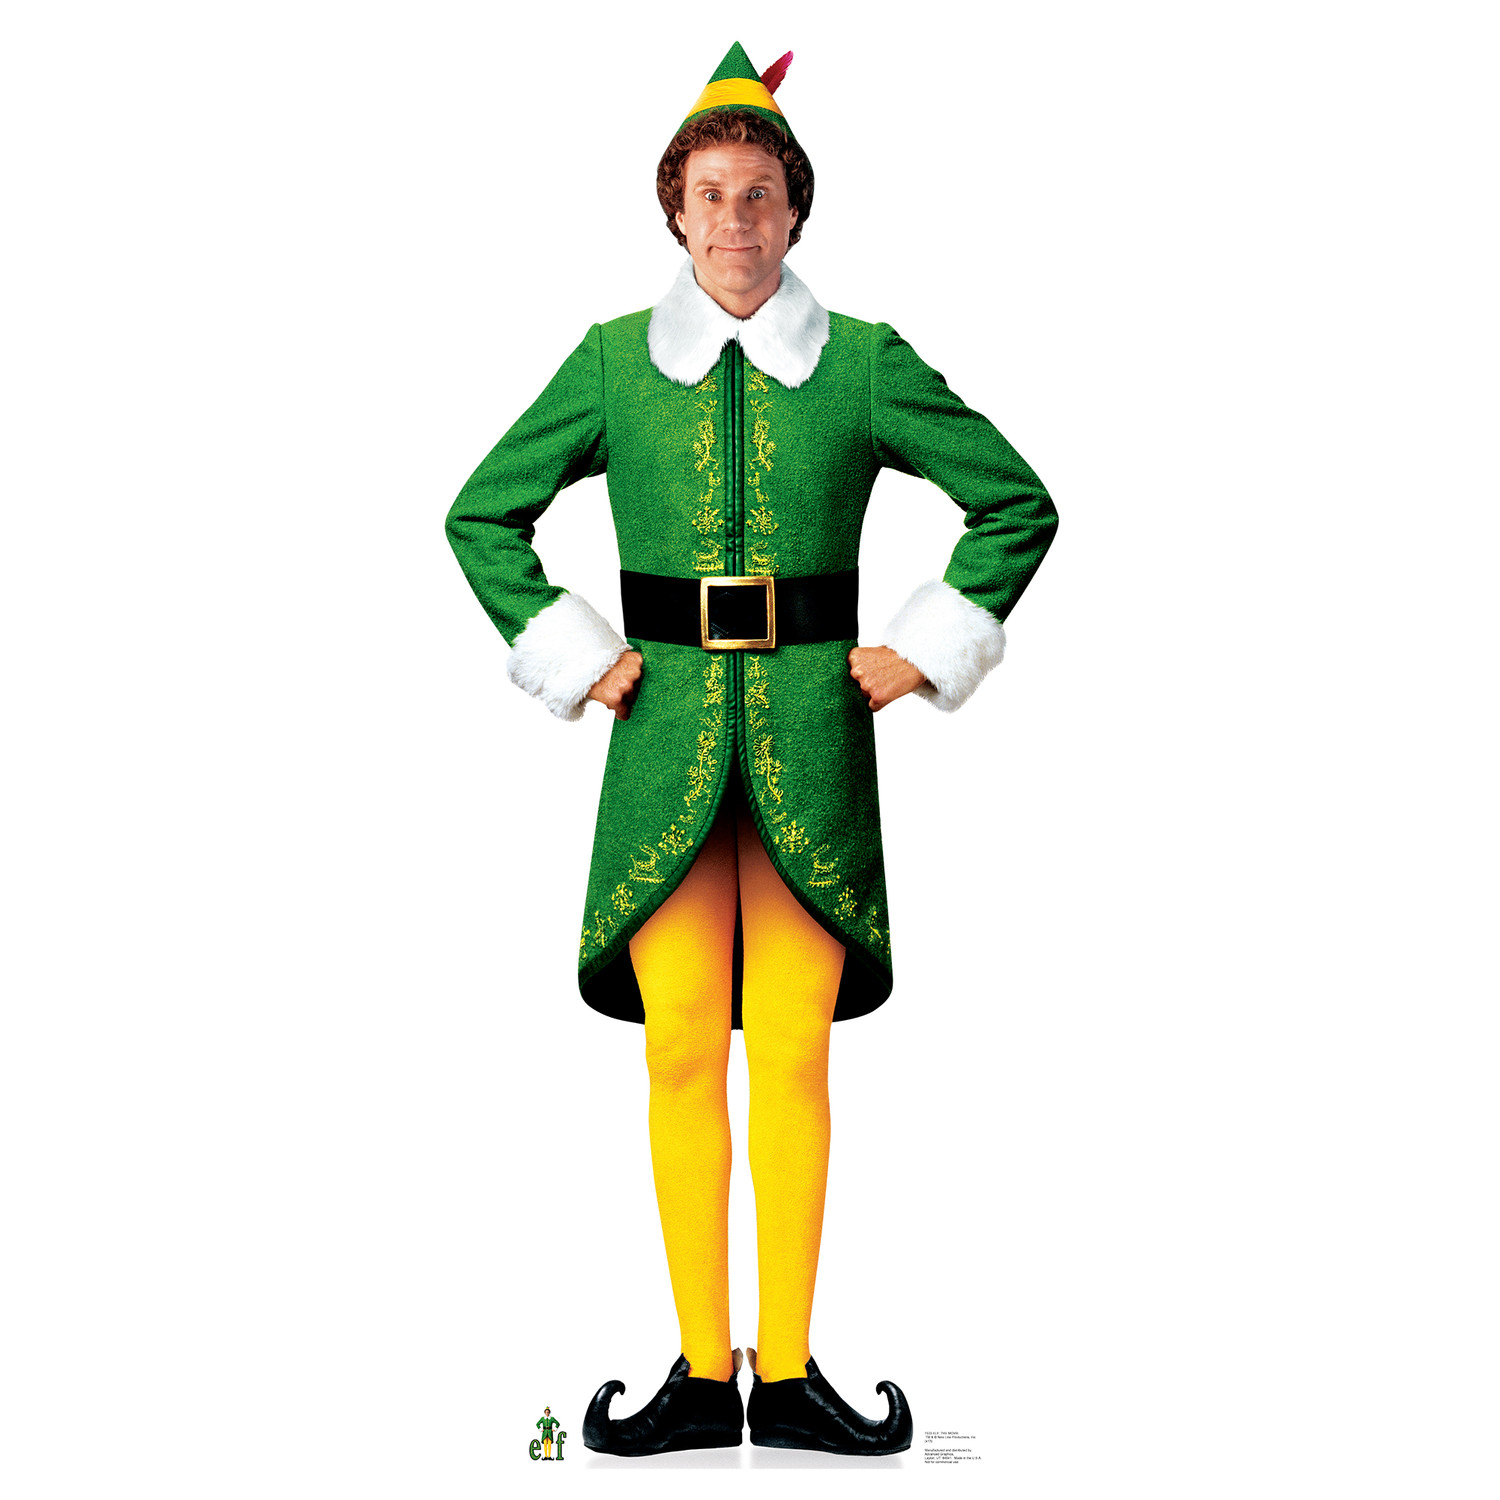 Buddy the elf clipart 7 » Clipart Station.